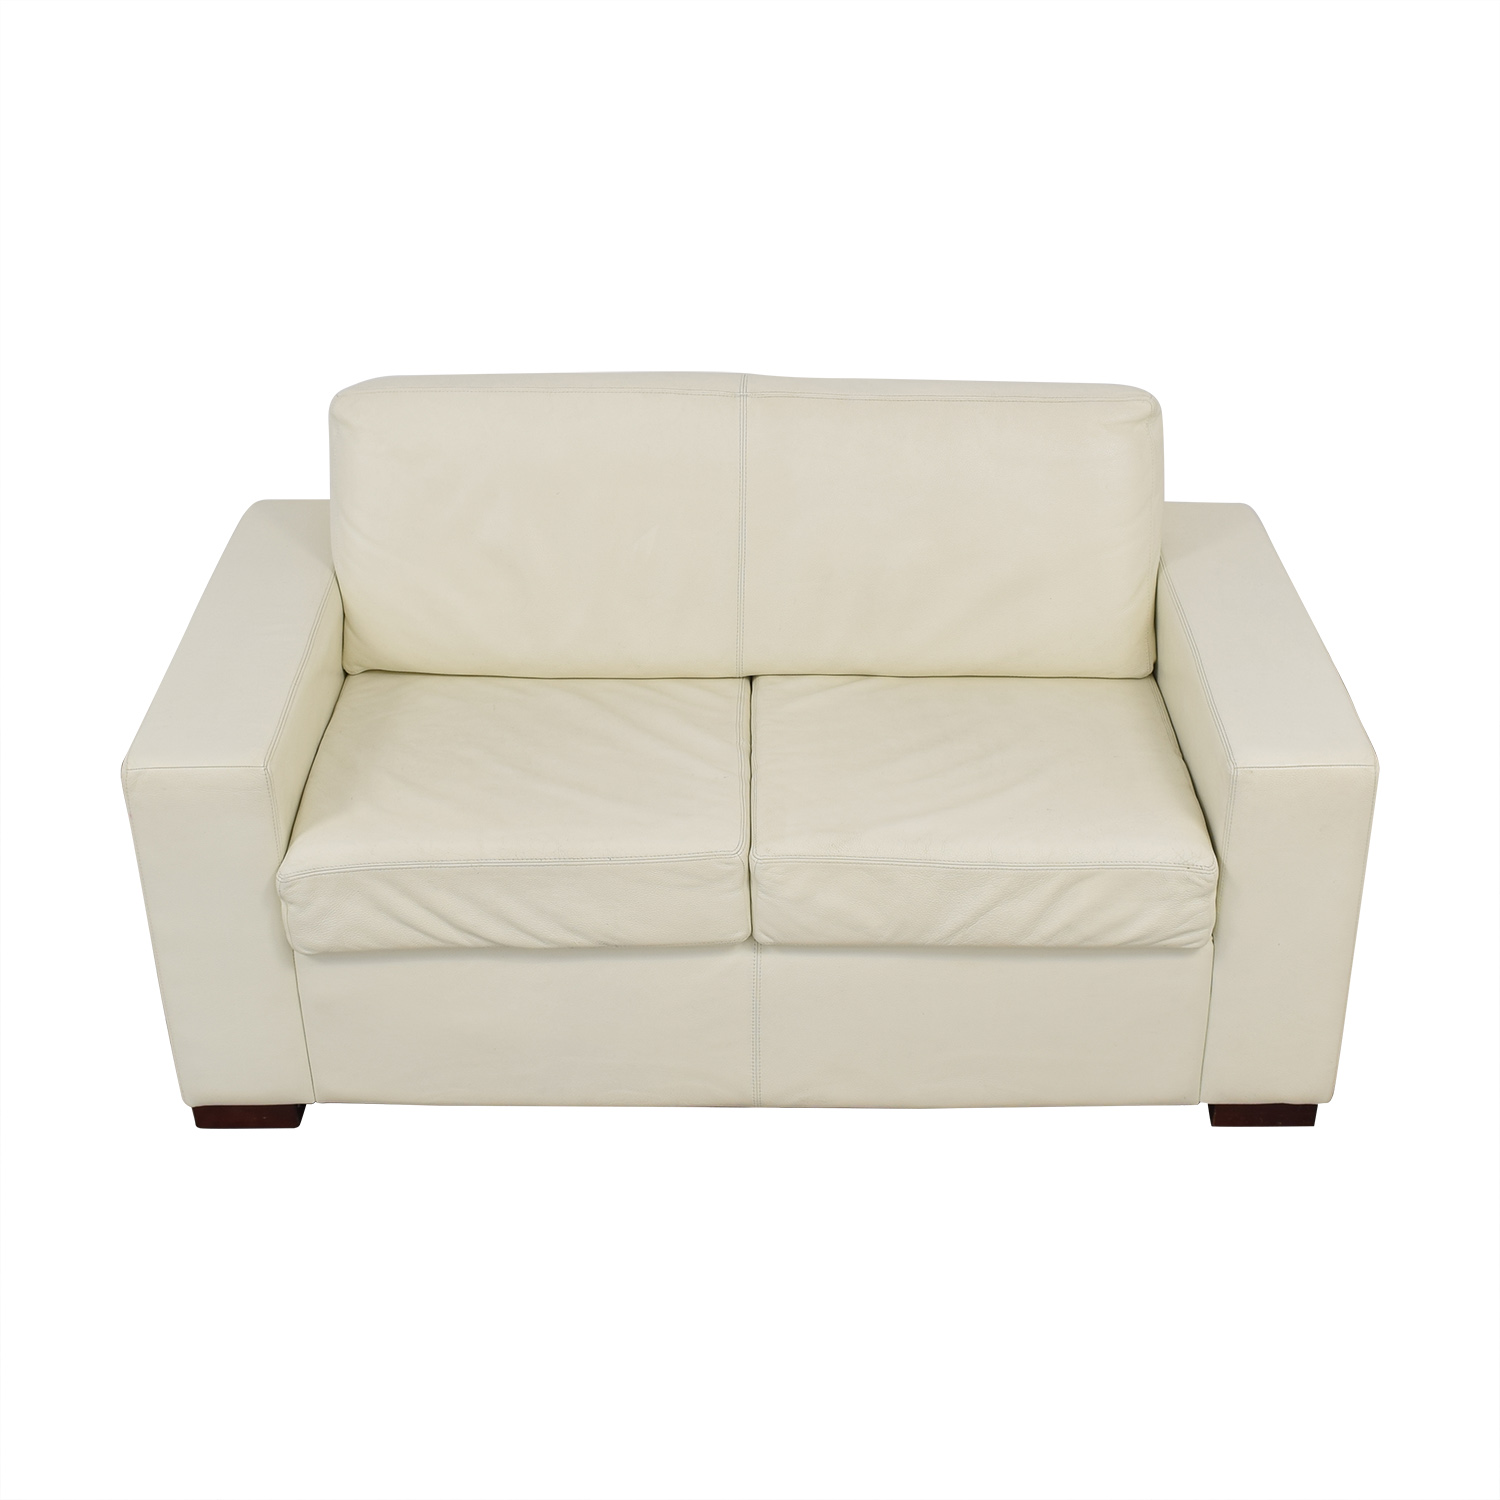 New York Modern Love Seat for sale